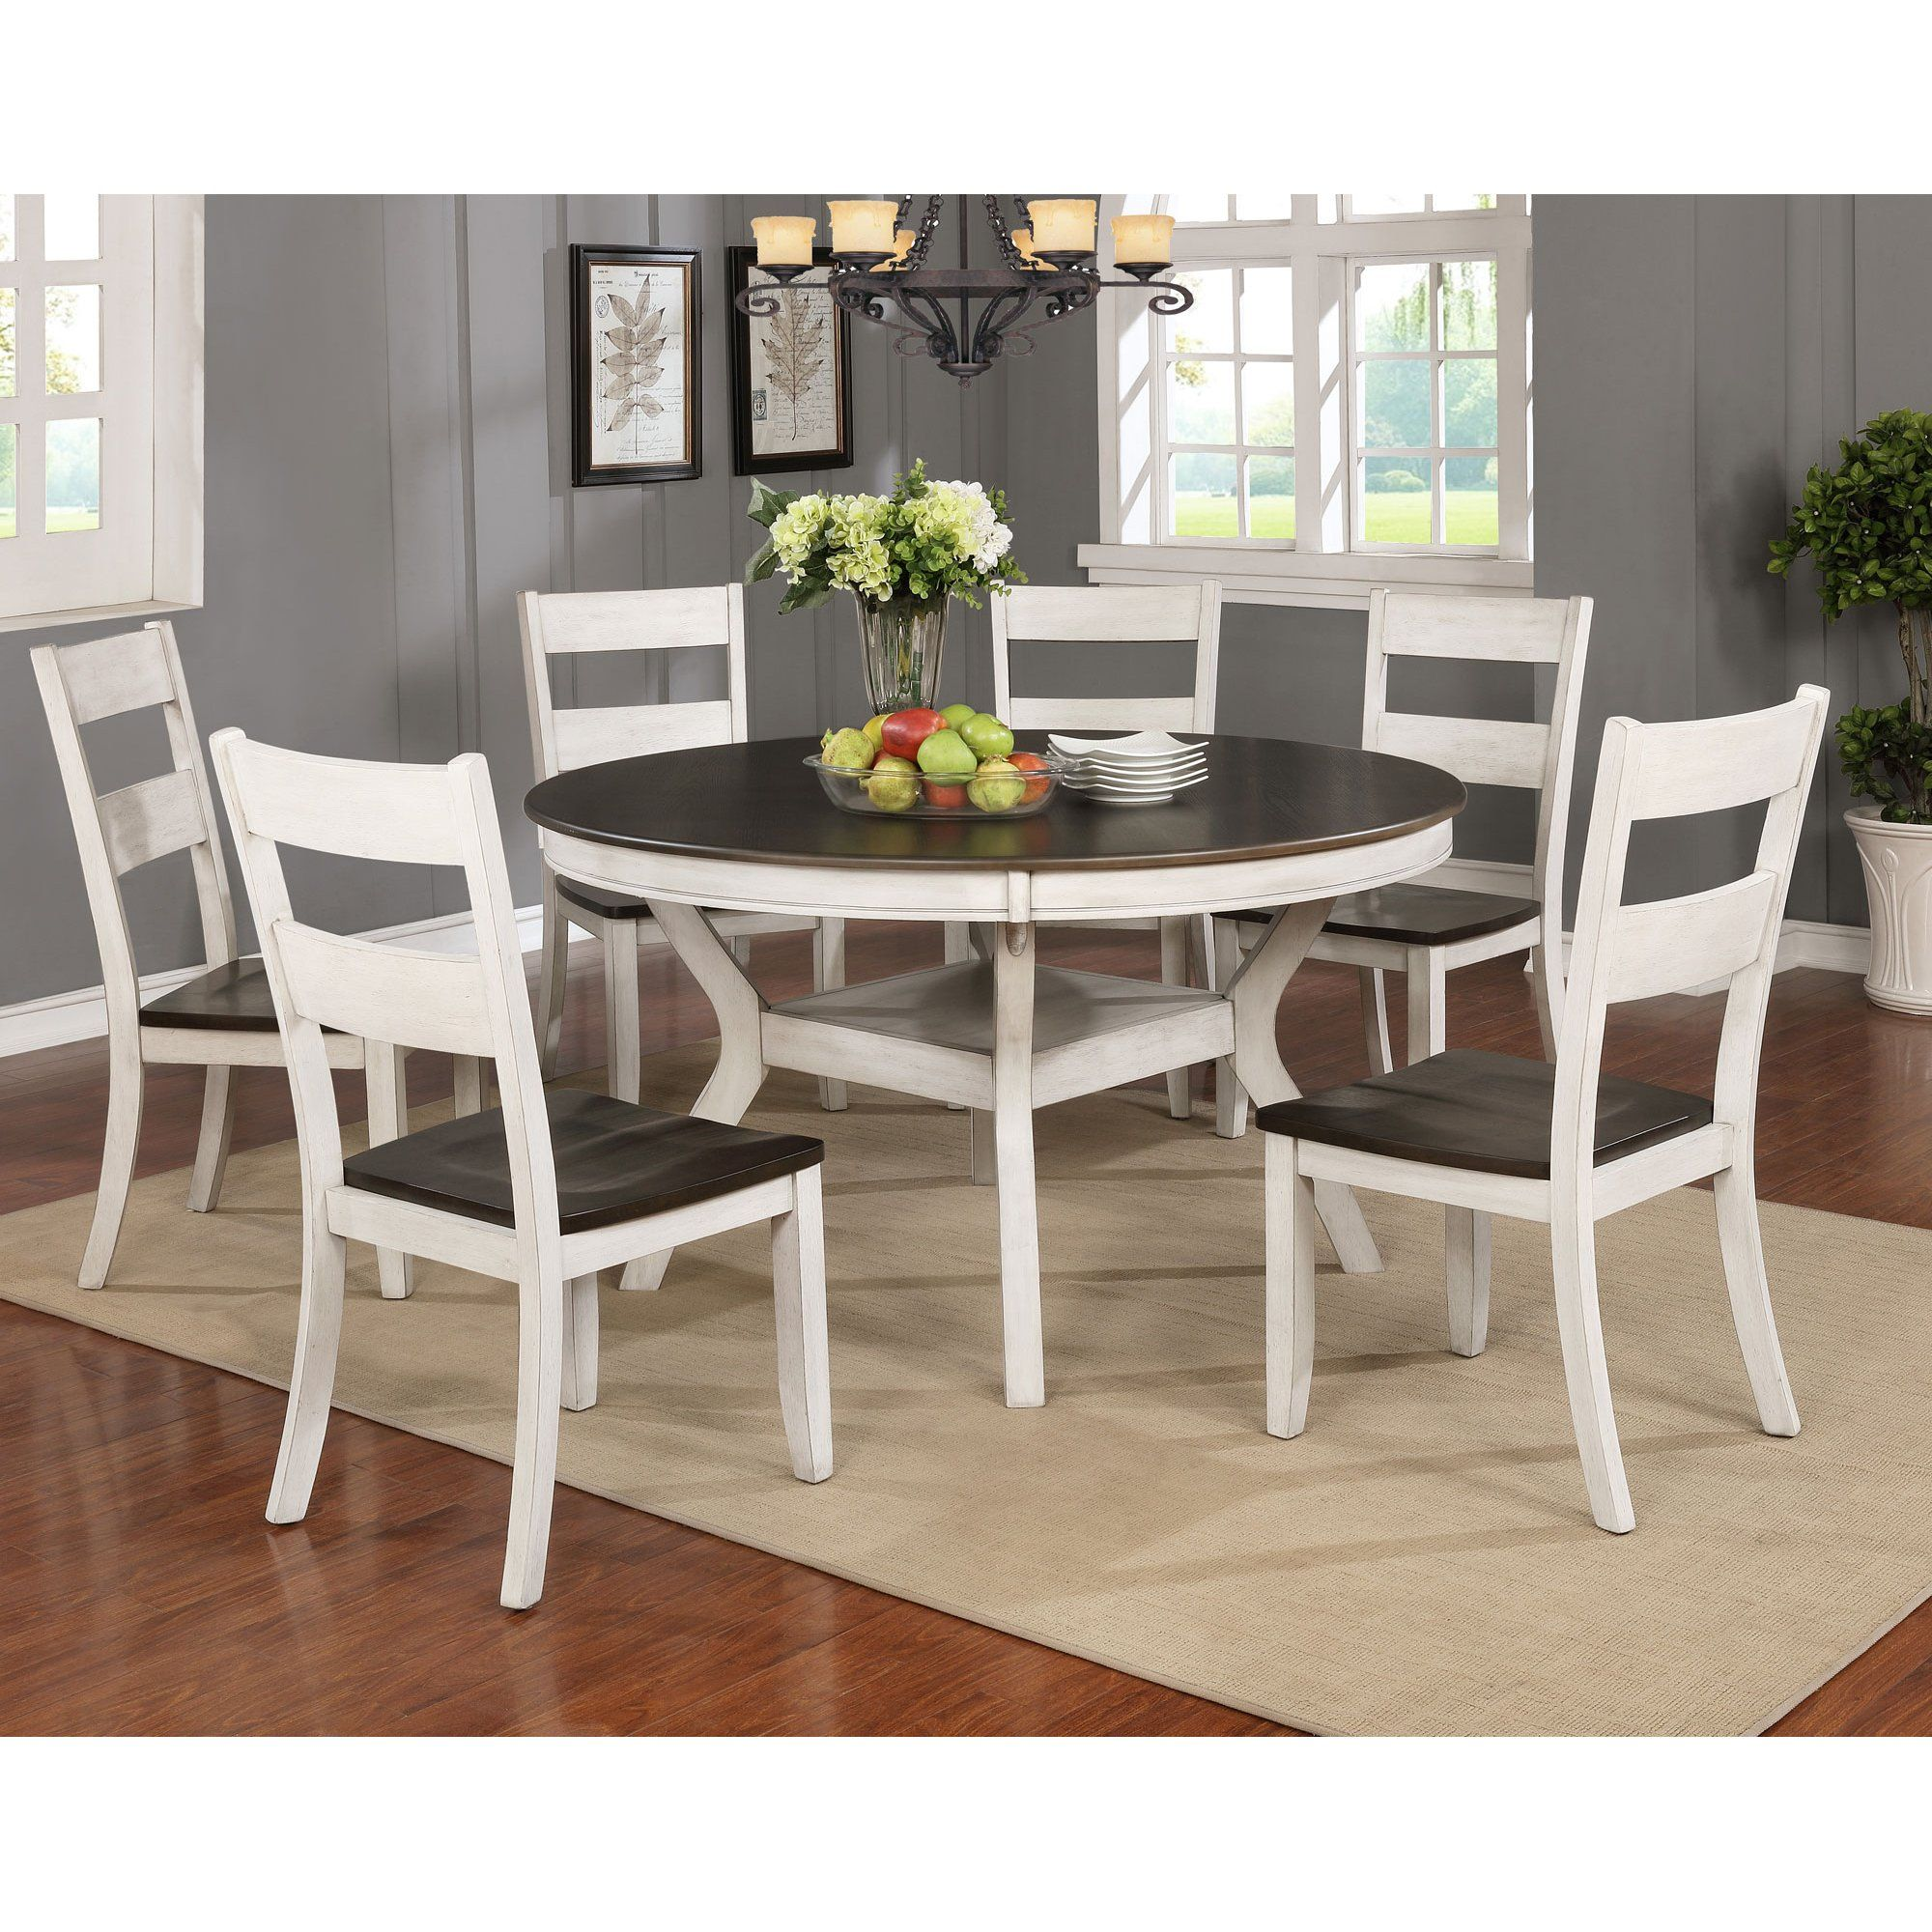 White And Brown 7 Piece Dining Set Perrin Rc Willey Furniture Store Round Wood Dining Table Round Dining Table Sets Solid Wood Dining Chairs